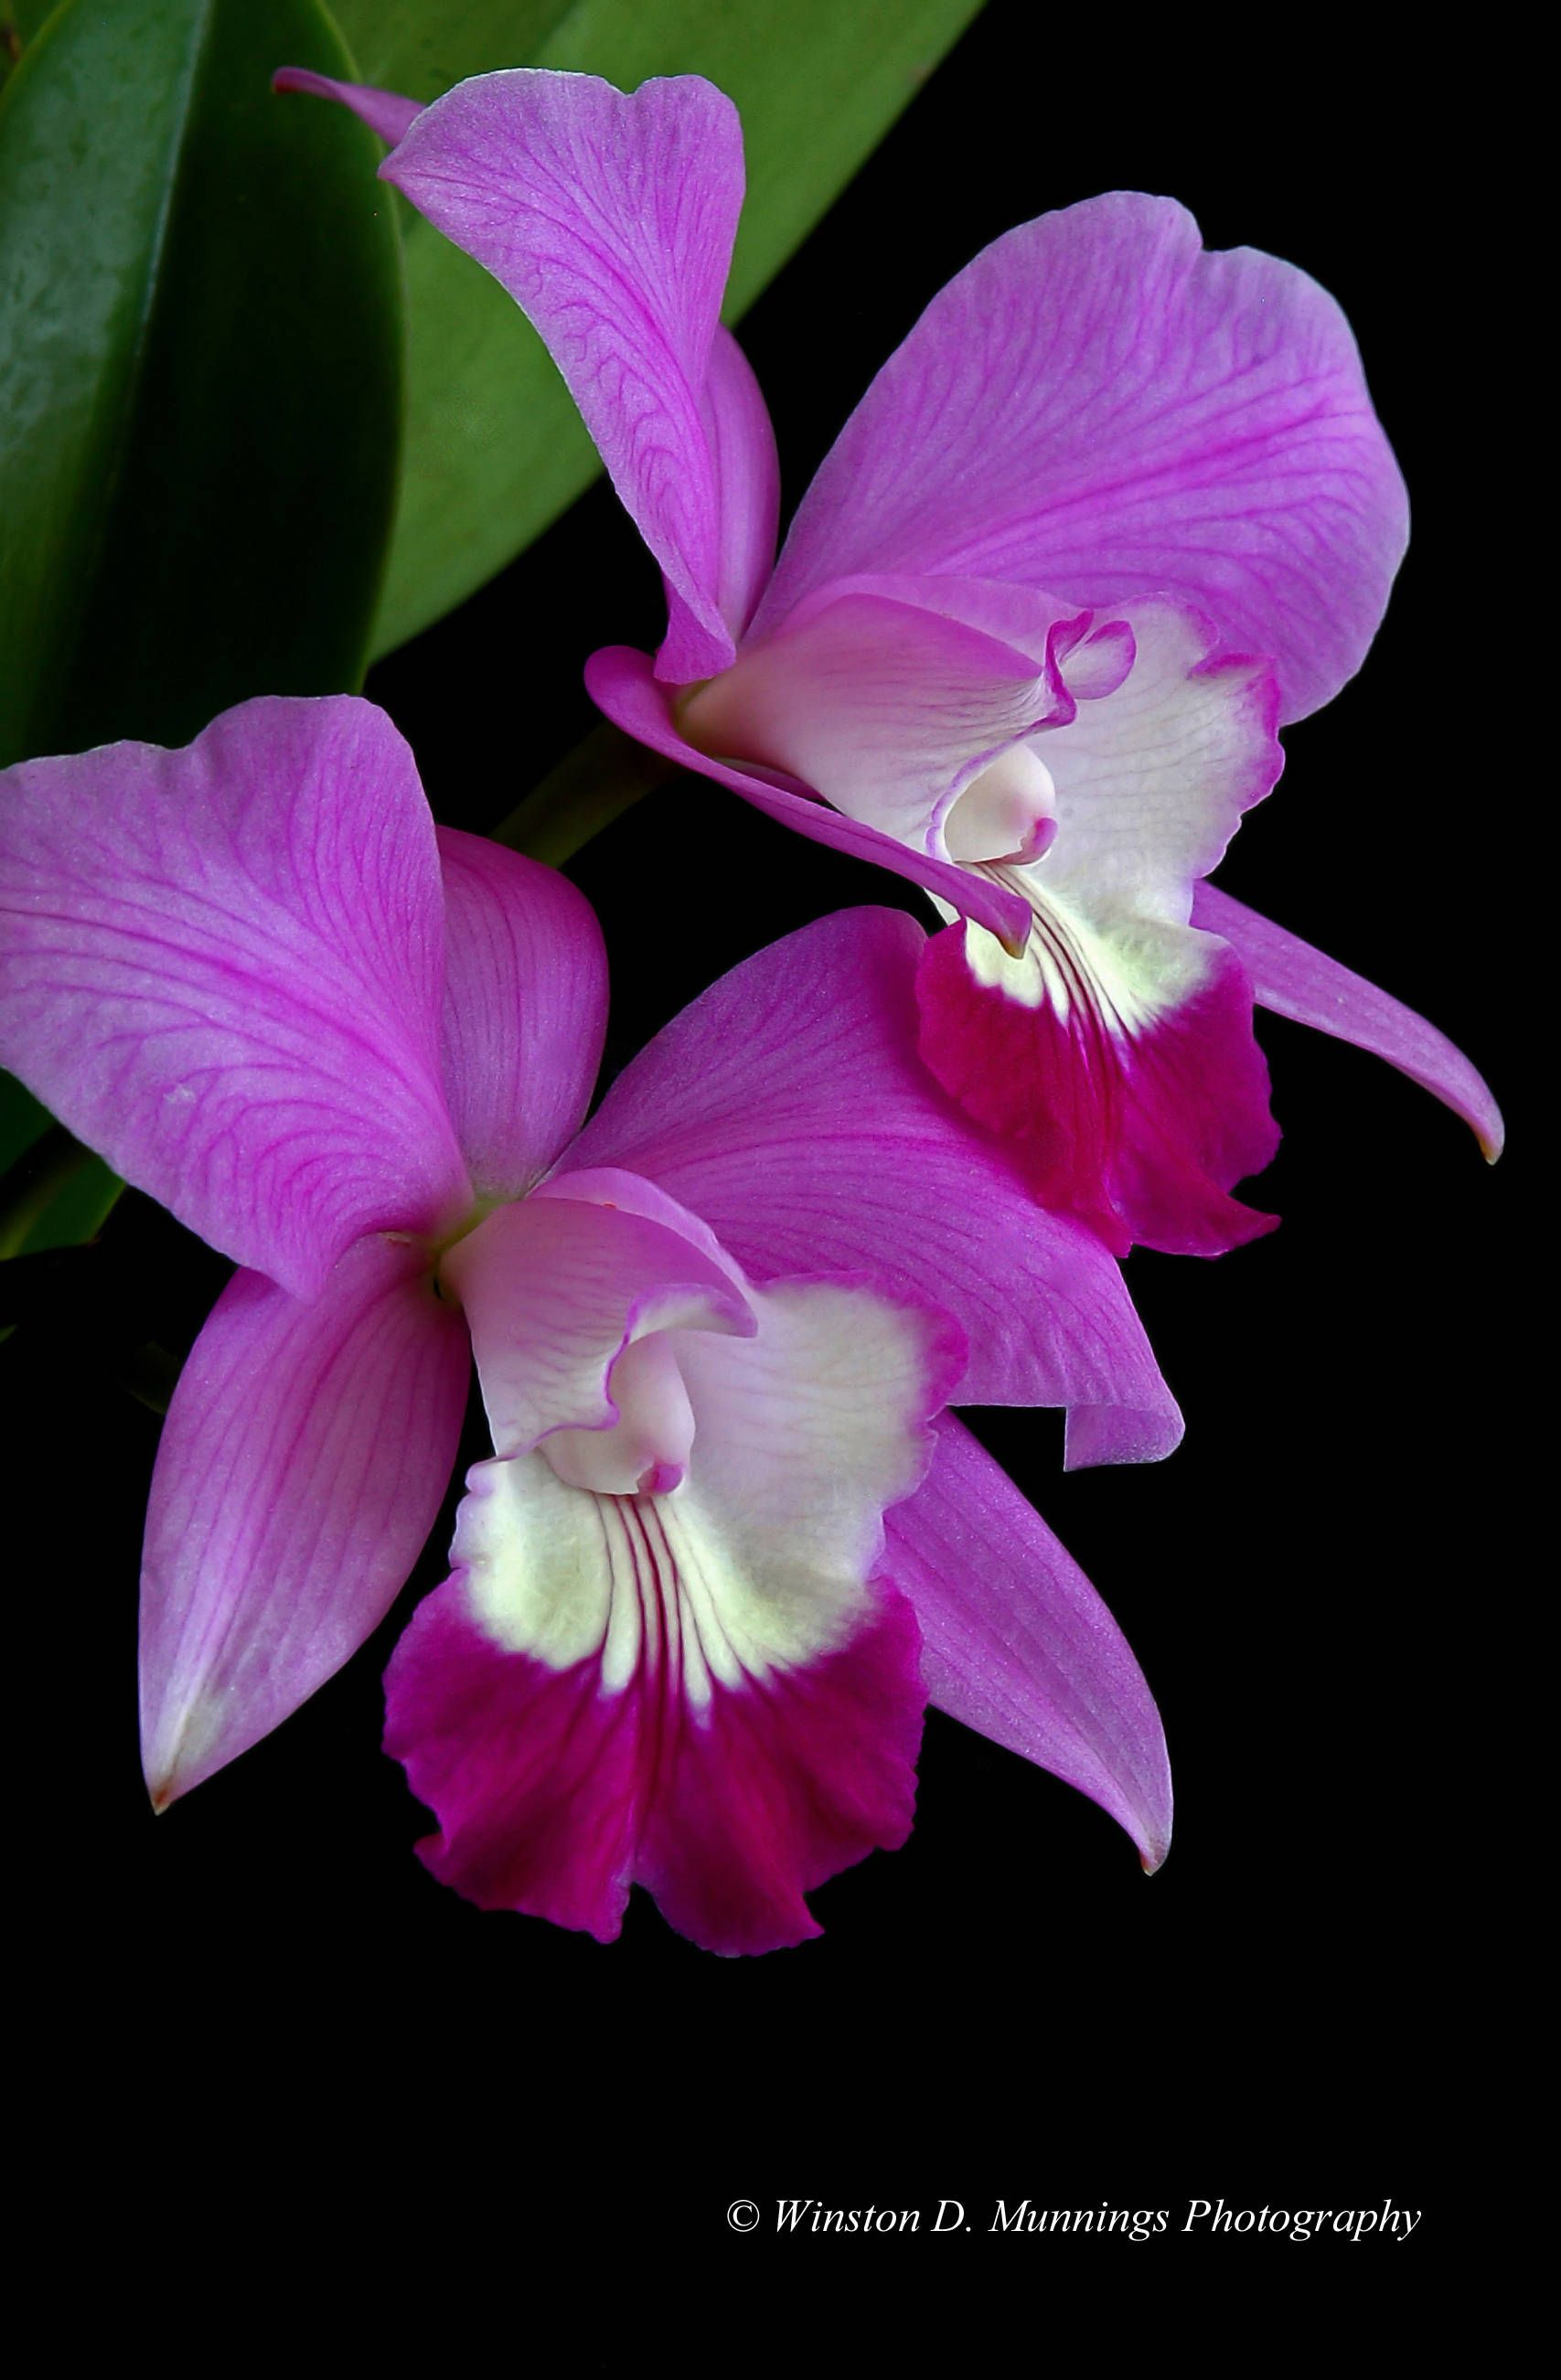 Laeliocattleya Orchid Laelia Cattleya Orchid Orchids Air Orchid Flower Beautiful Flowers Beautiful Orchids